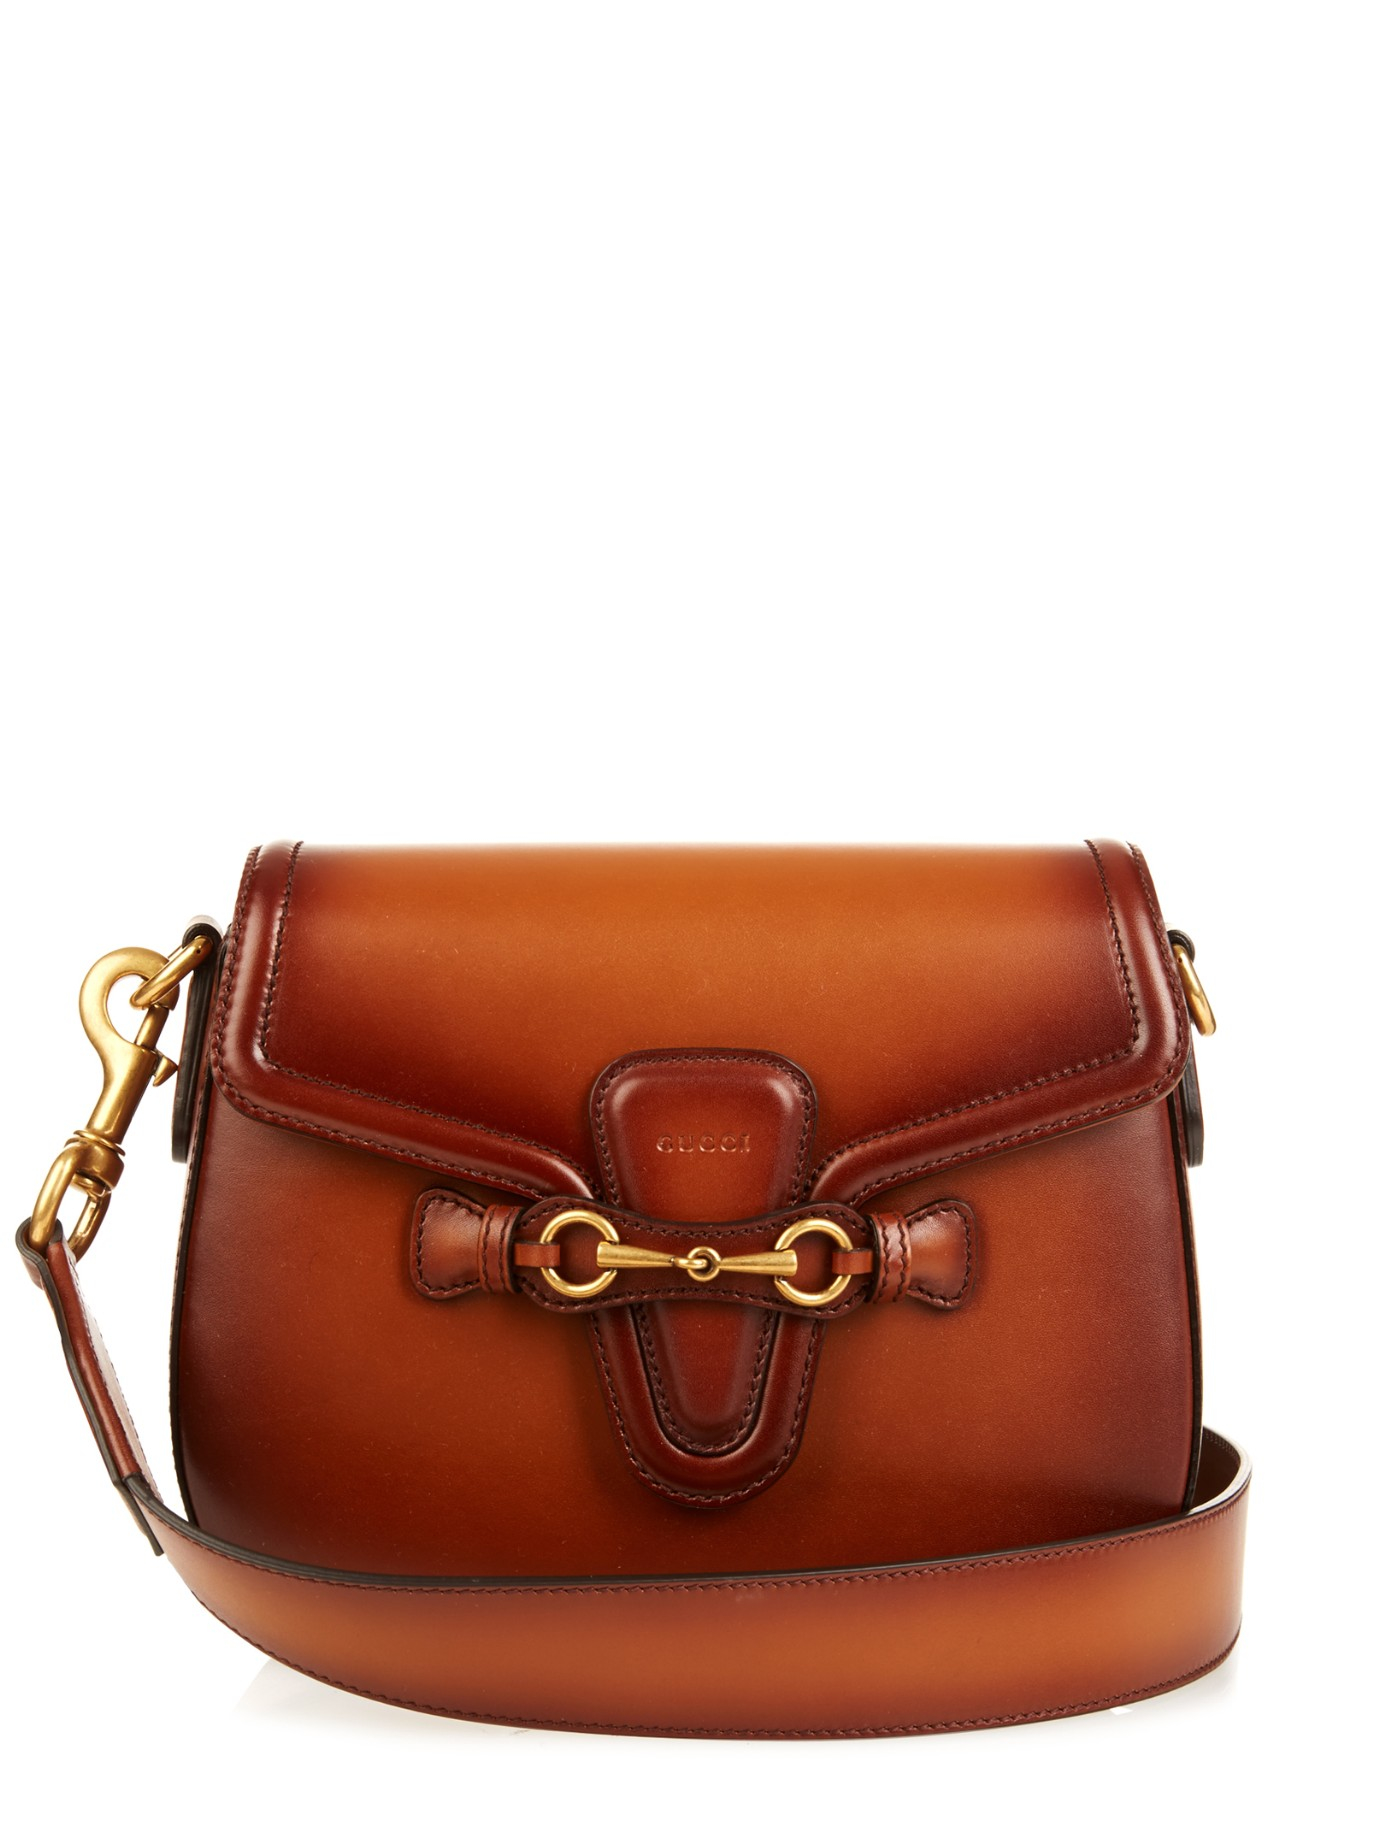 Shop Women's Shoulder Bags Now At sashimicraft.ga And Enjoy Free Shipping & Returns On All Orders.